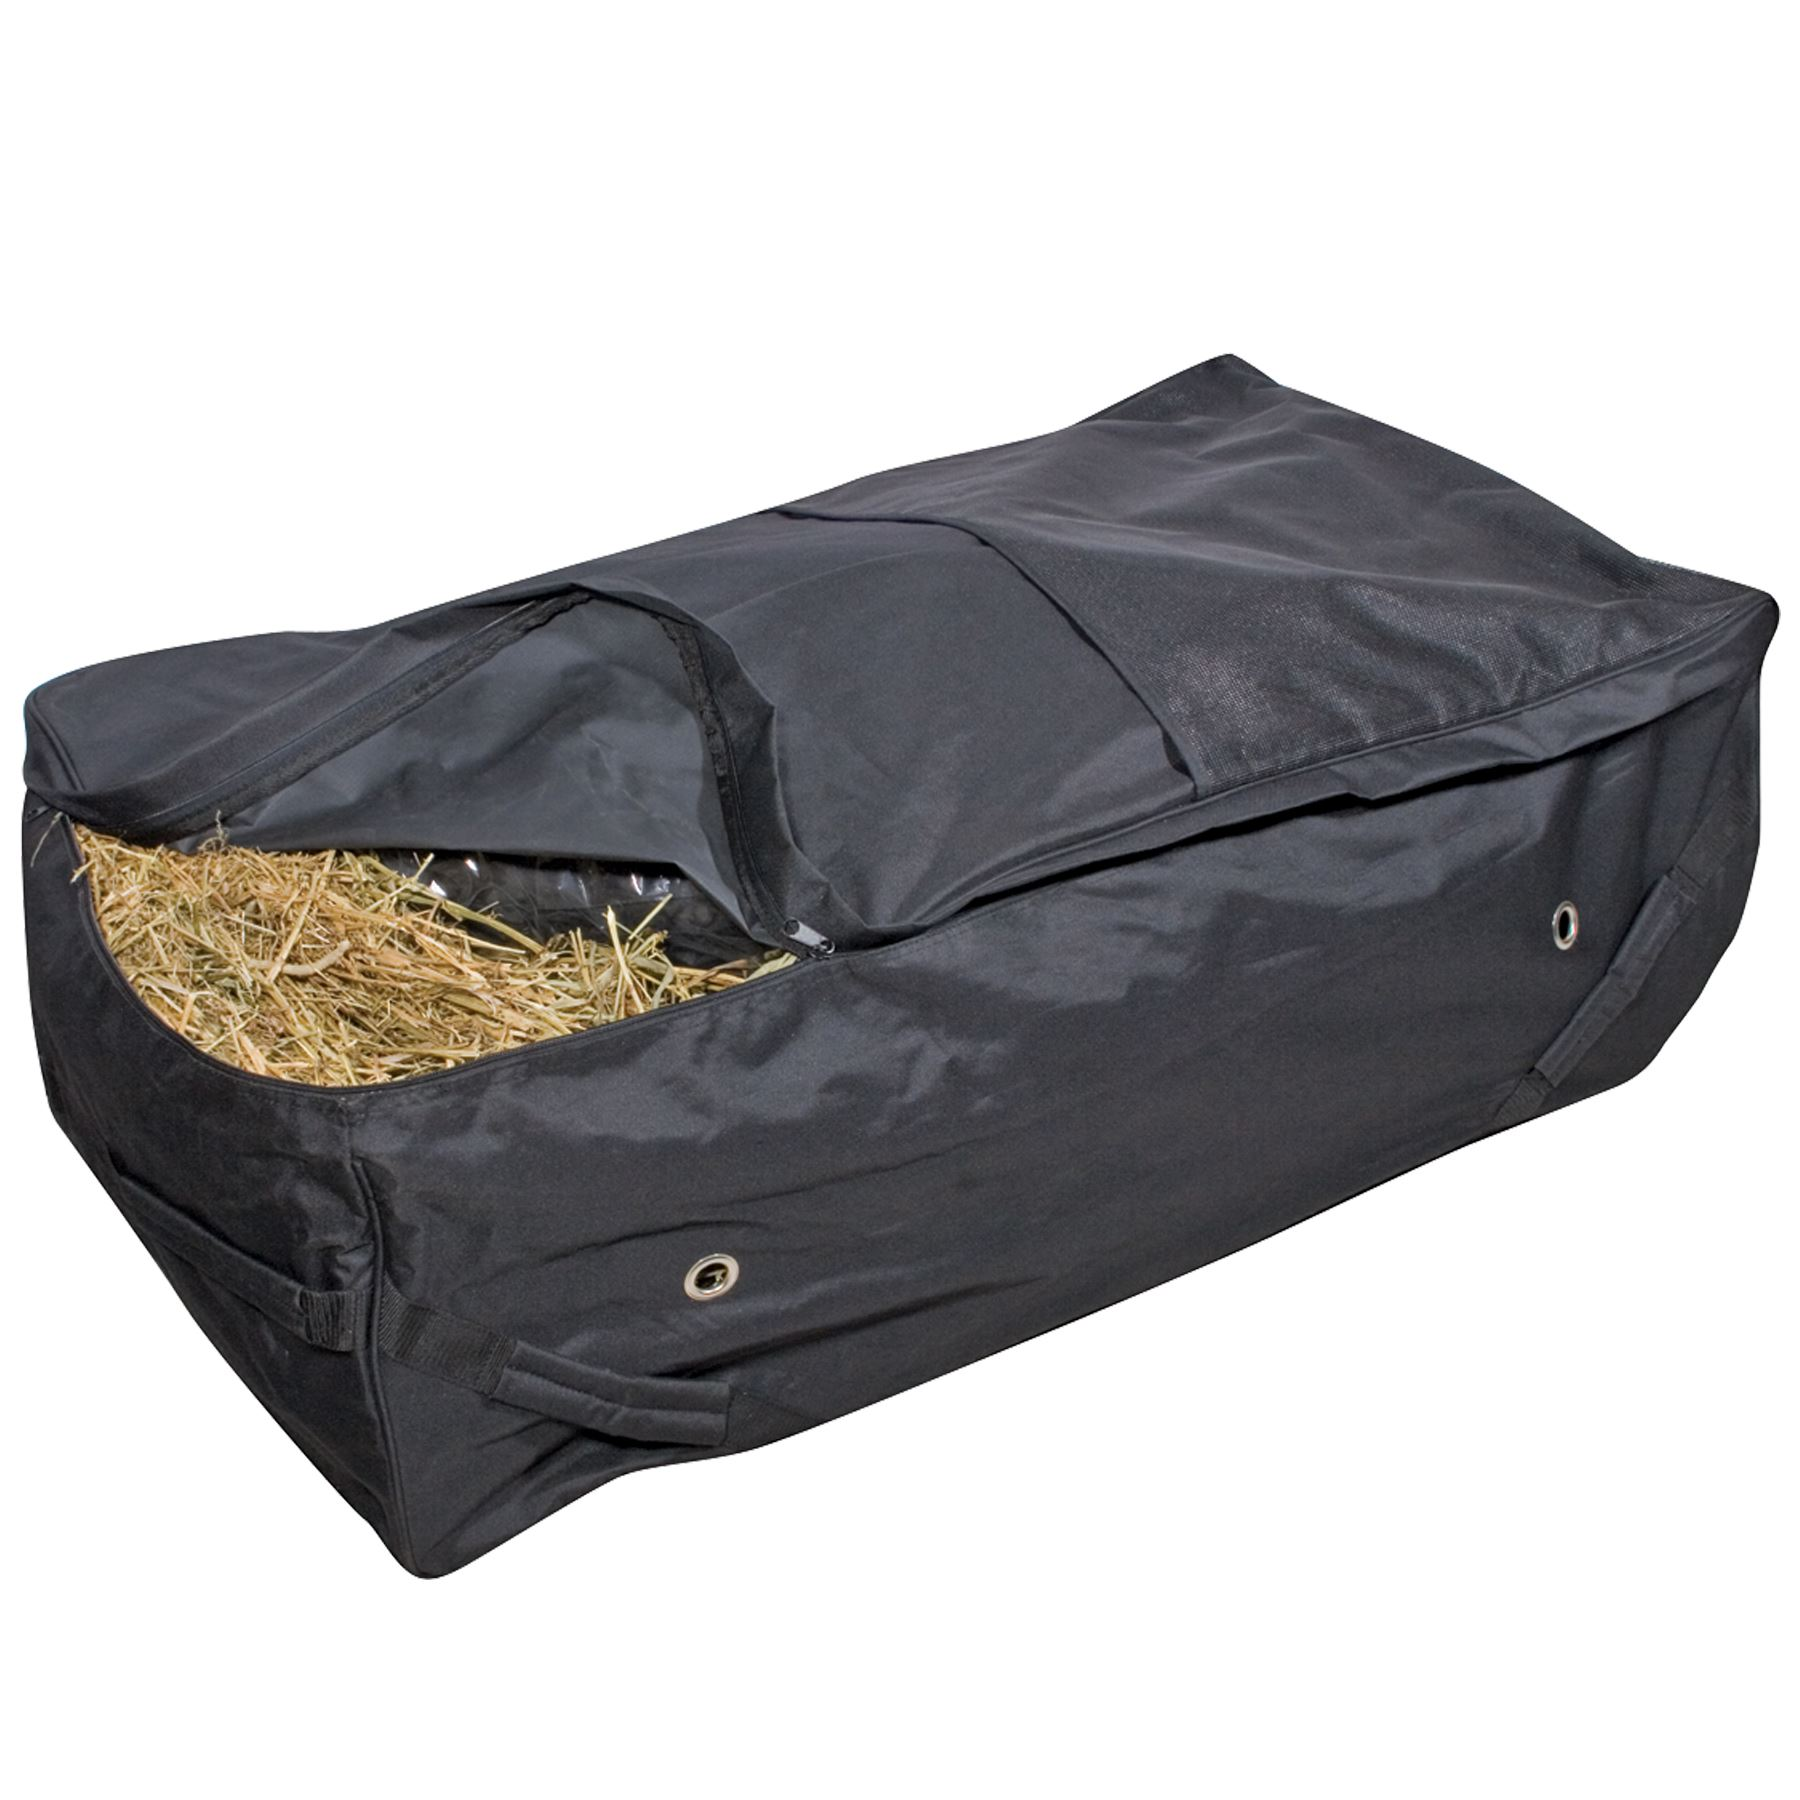 Dura Tech Hay Bale Dolly With Wheels